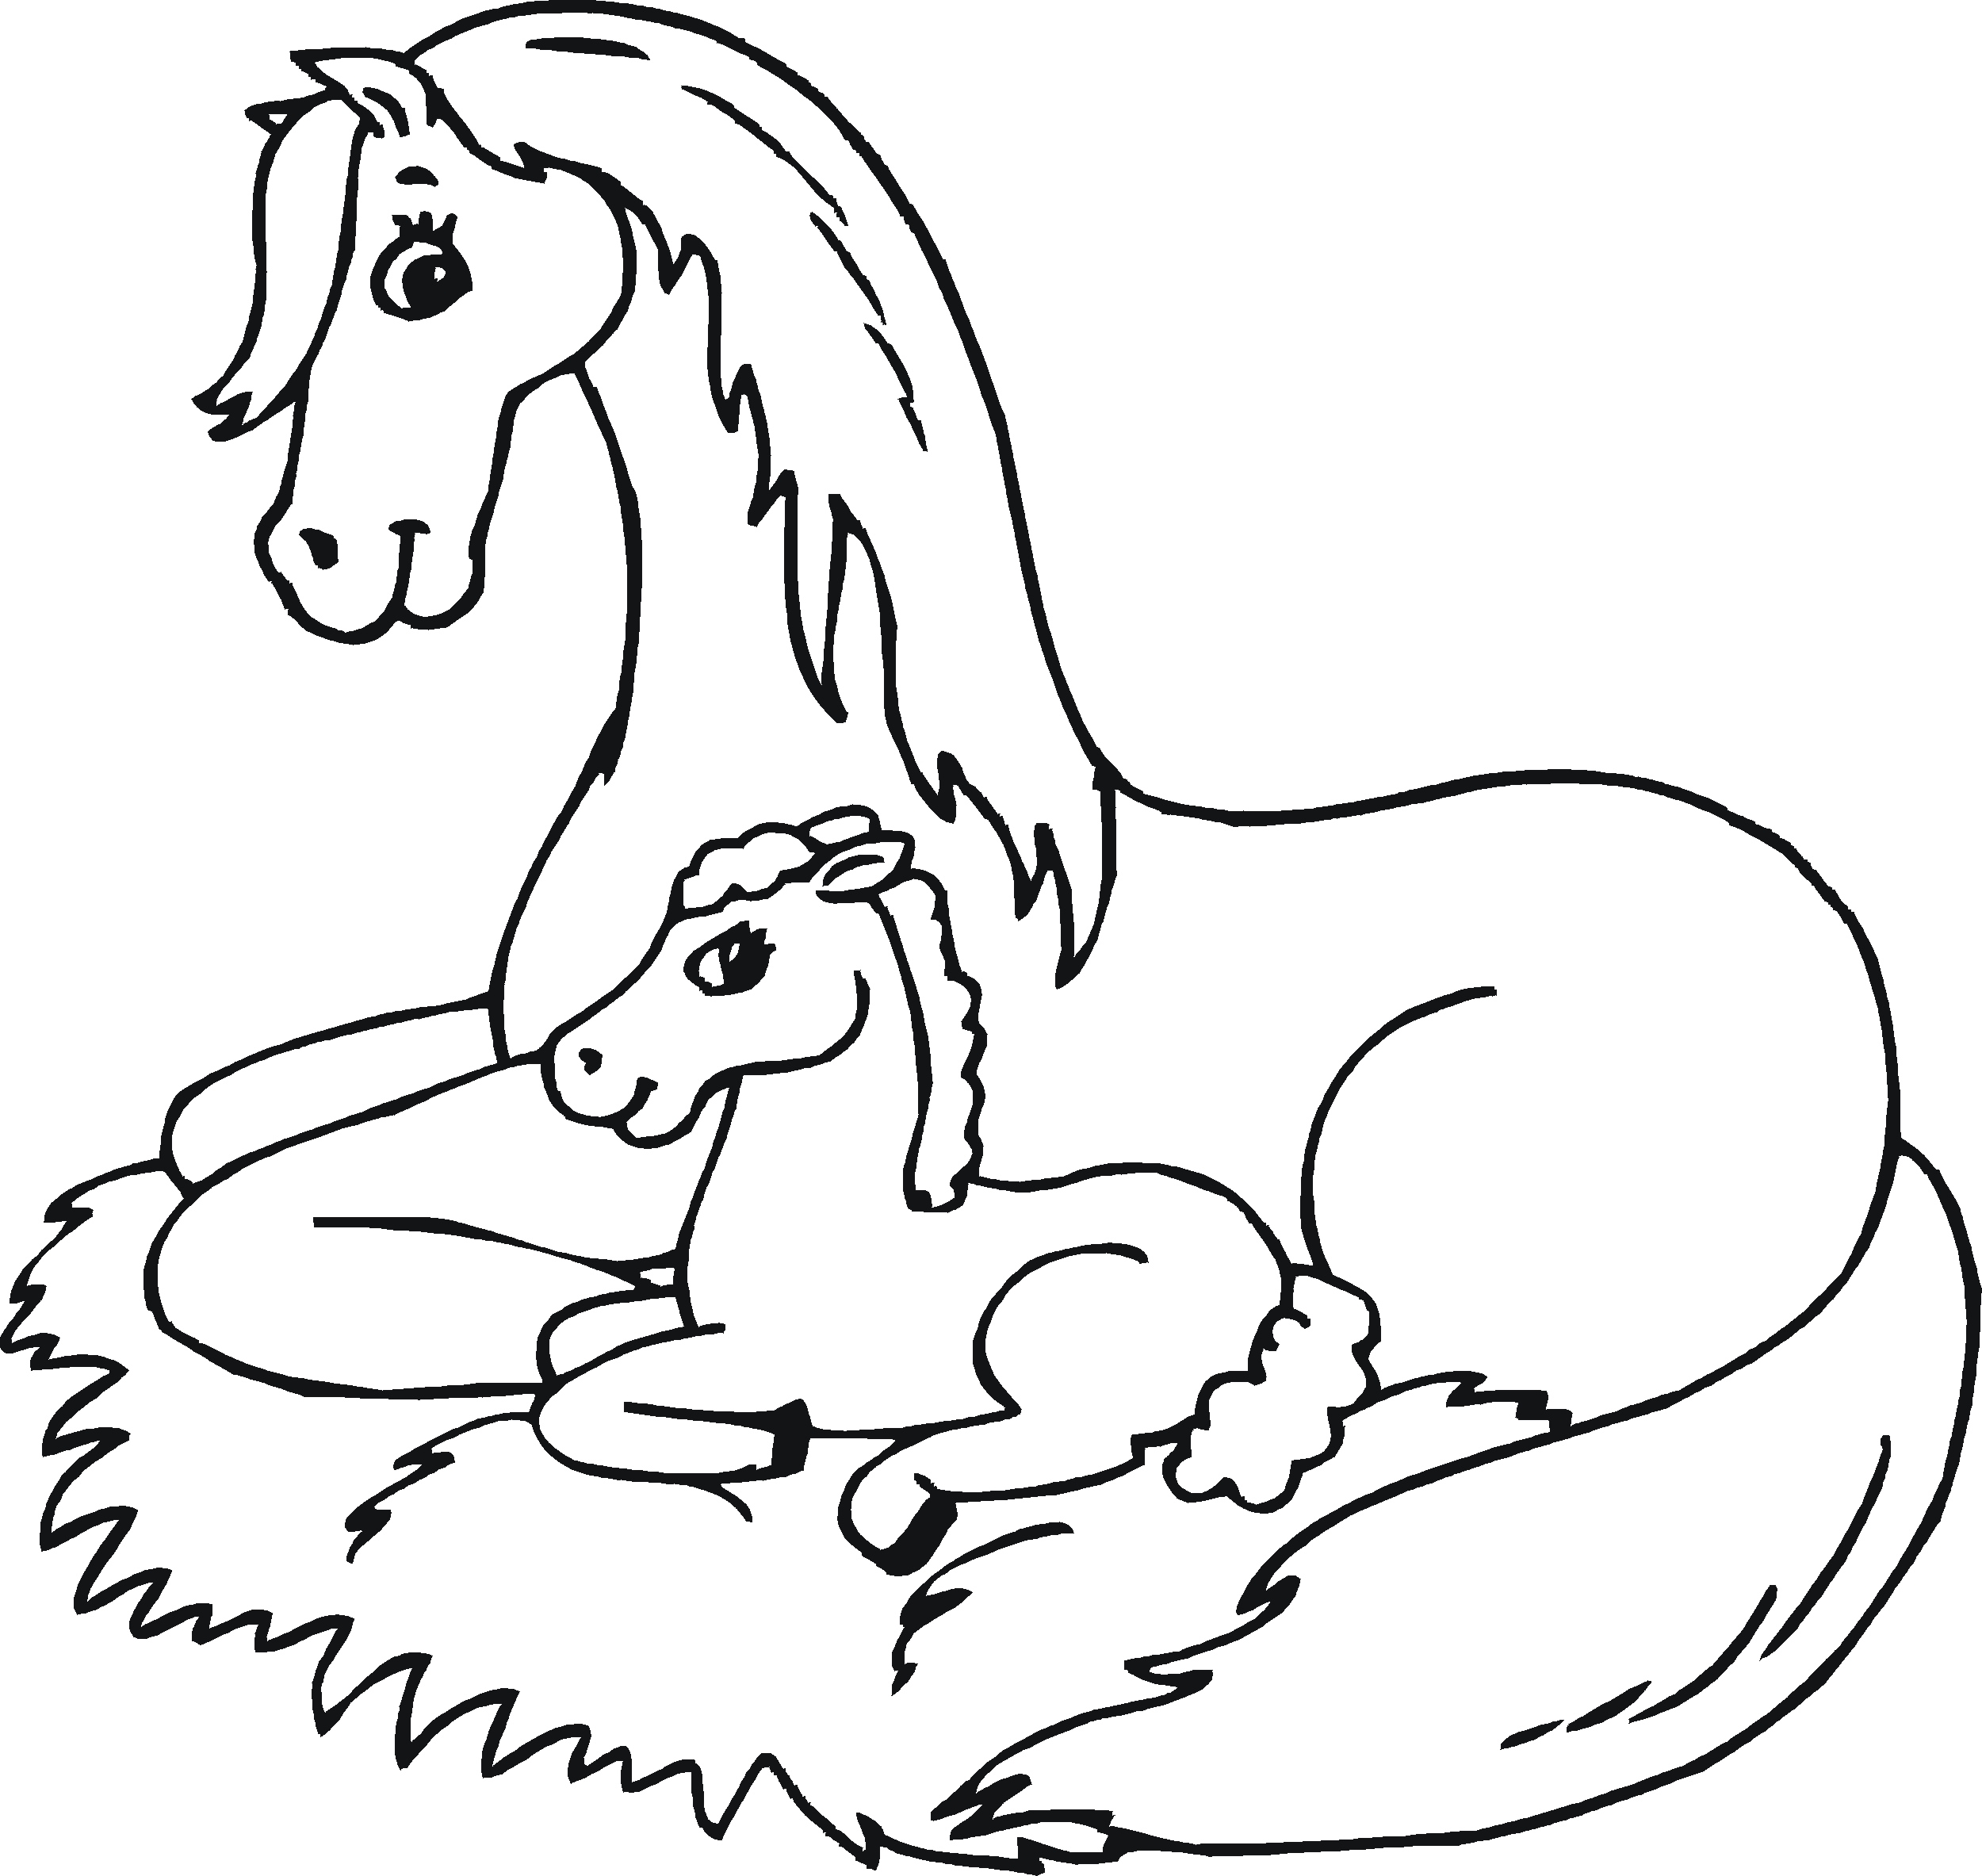 coloring pages of horses to print free horse coloring pages of to print coloring horses pages